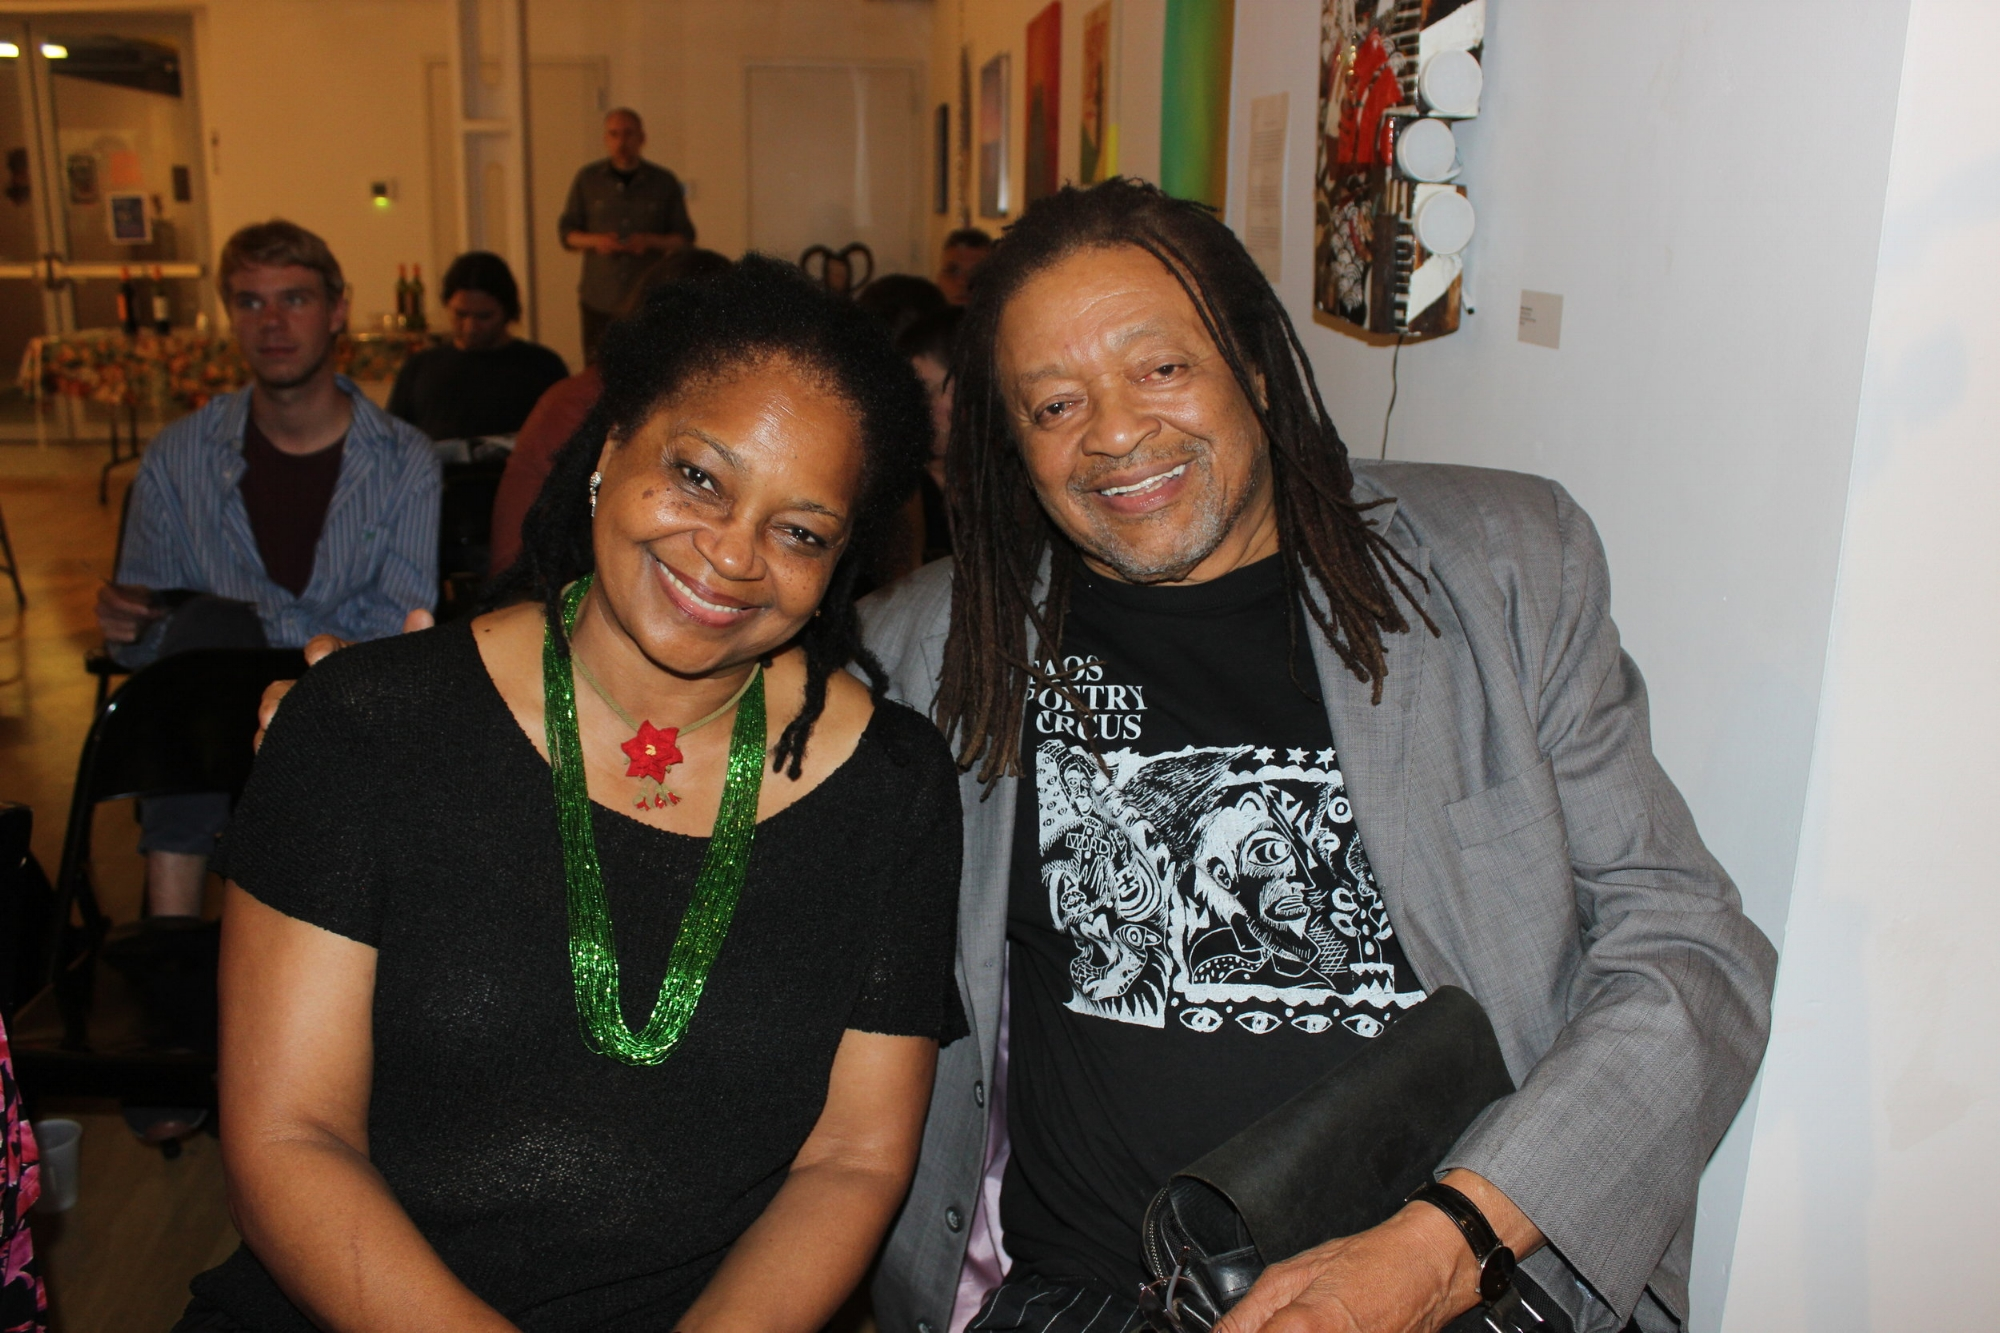 Quincy Troupe and wife Margaret. Photo by vanity gee.